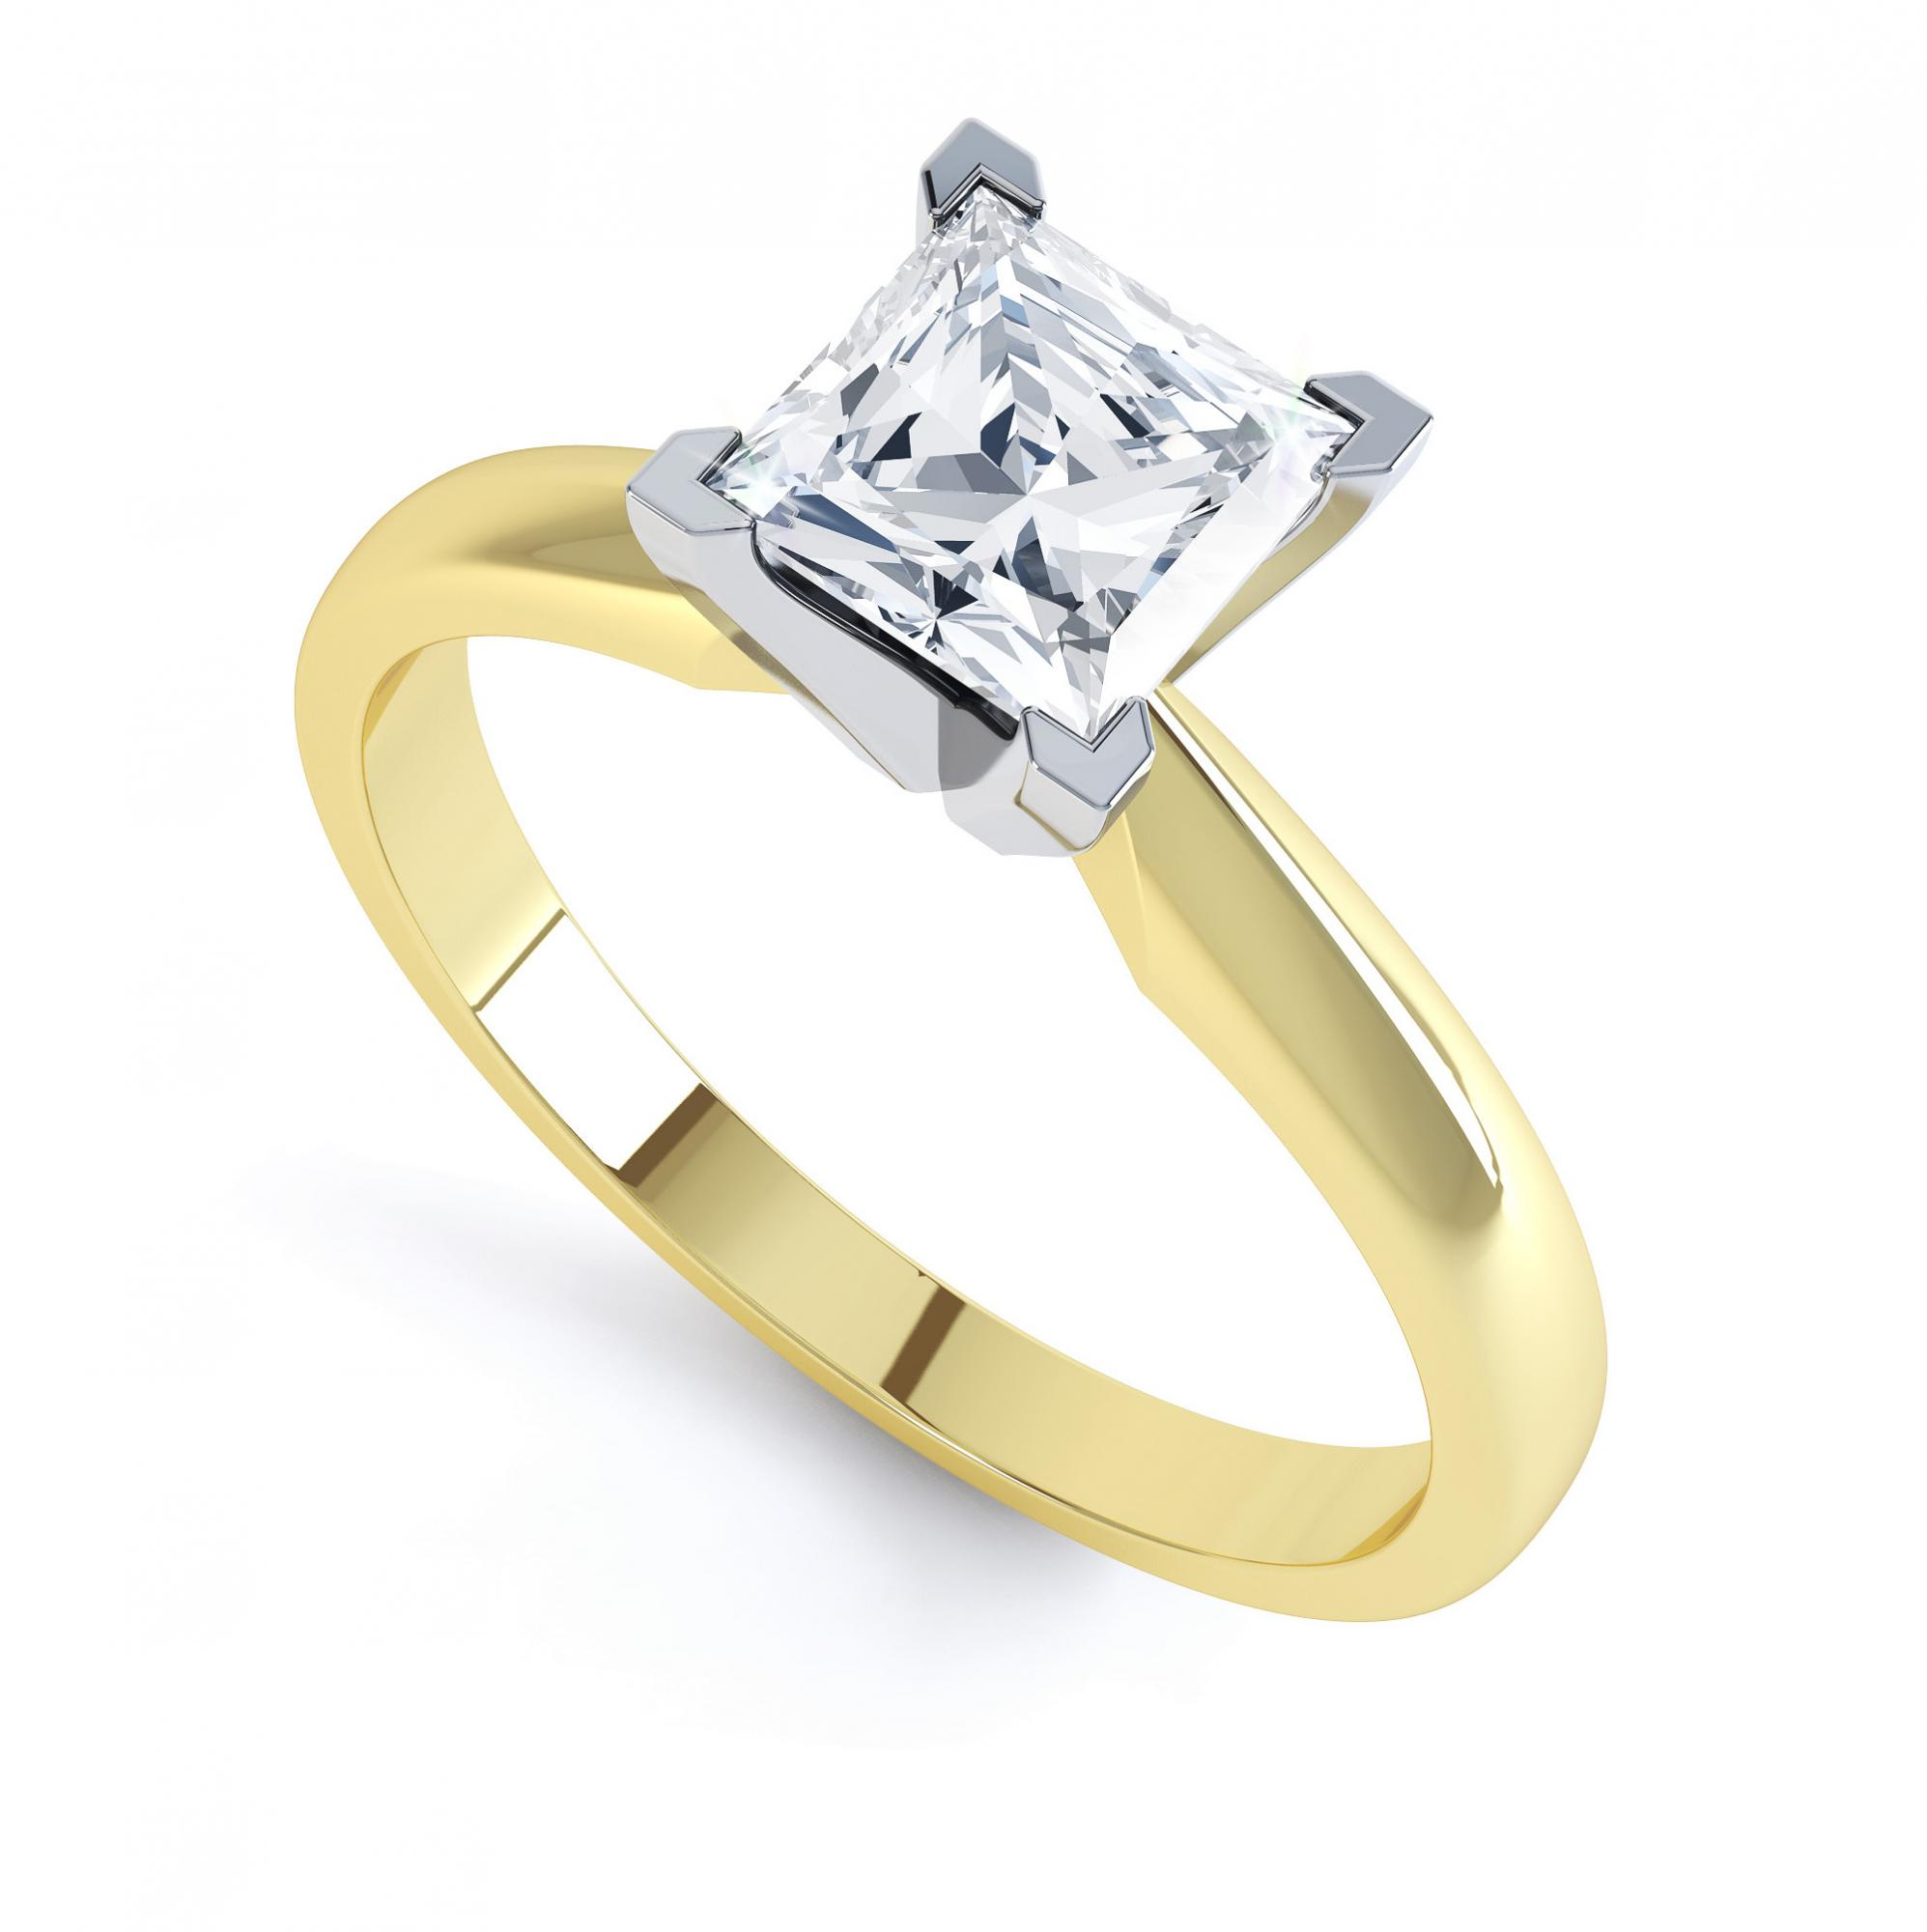 4 Claw Princess cut engagement ring Aurora perspective view yellow gold